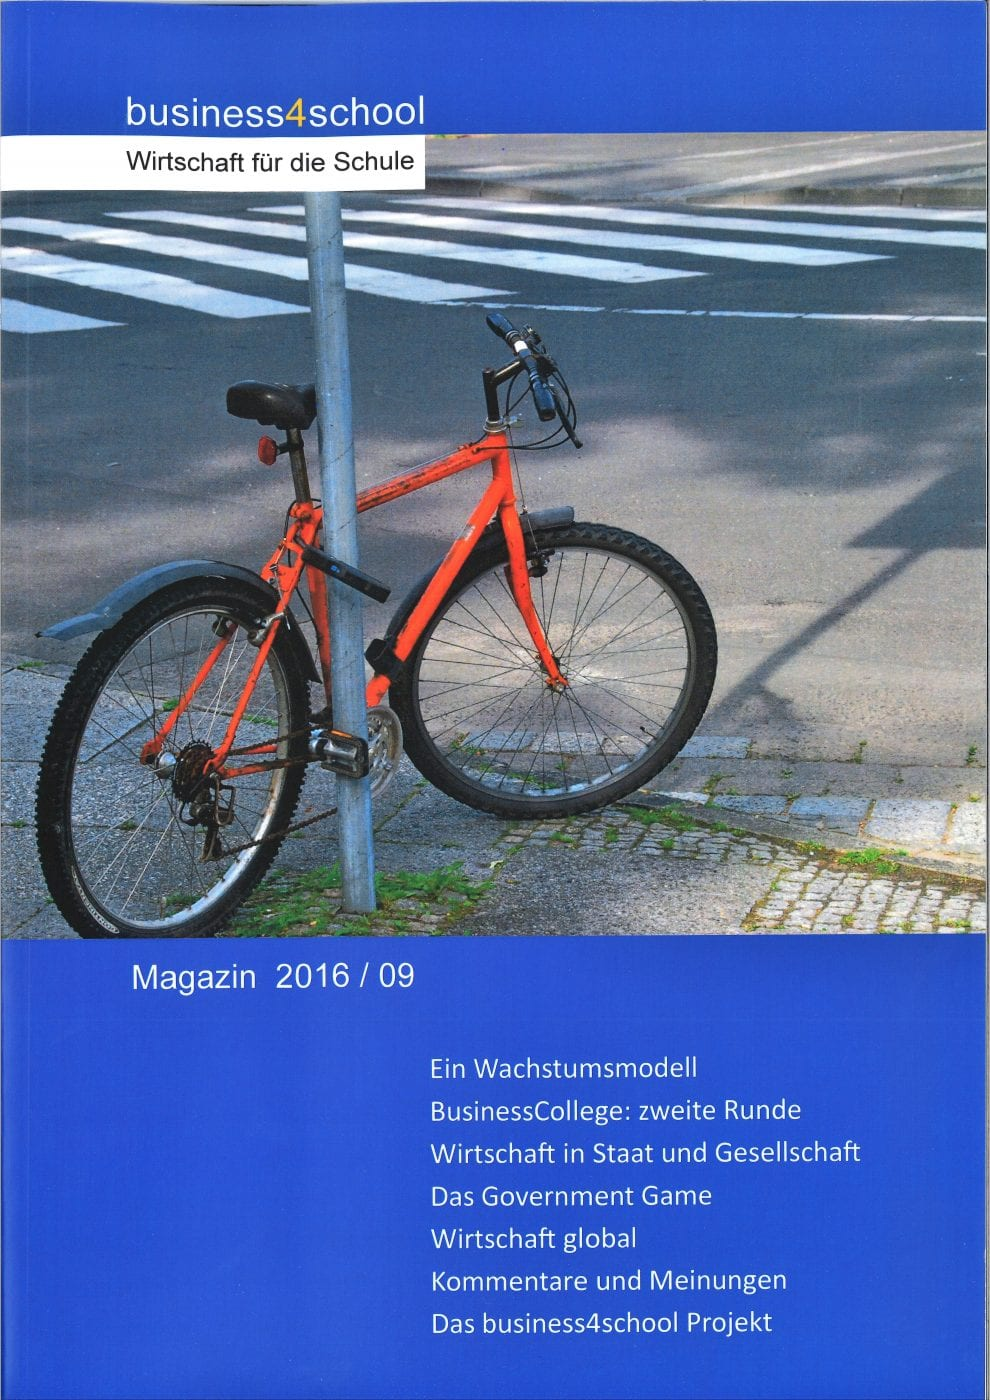 business4school-magazin-2016